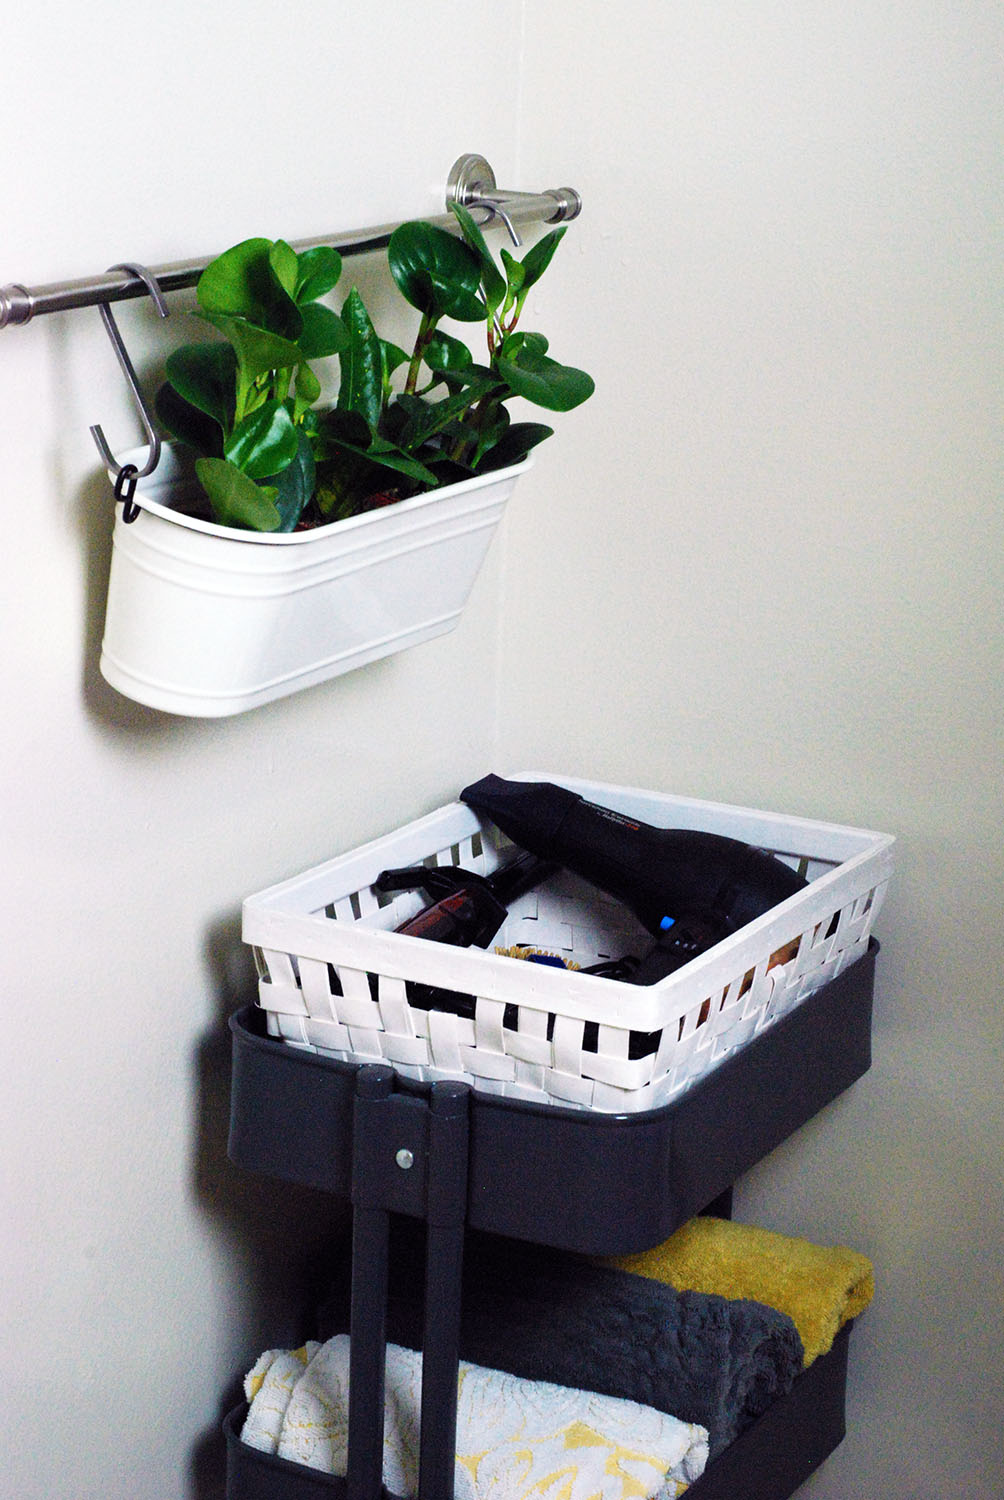 diy-ikea-planter-7